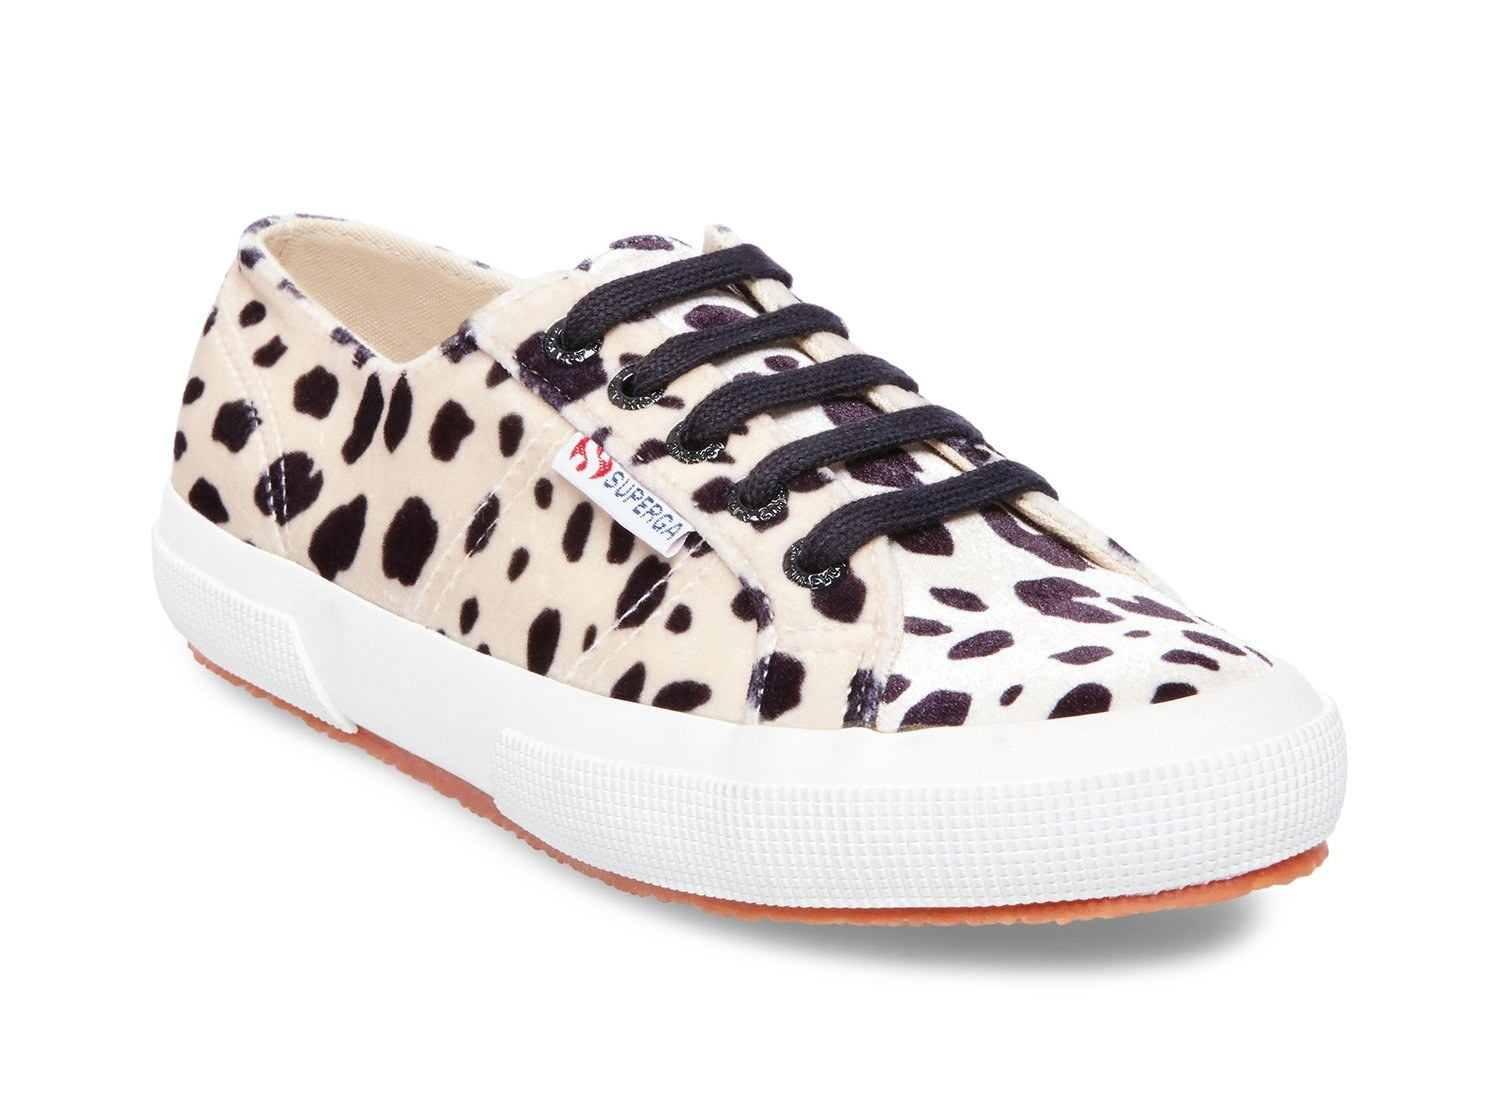 the leopard print sneakers